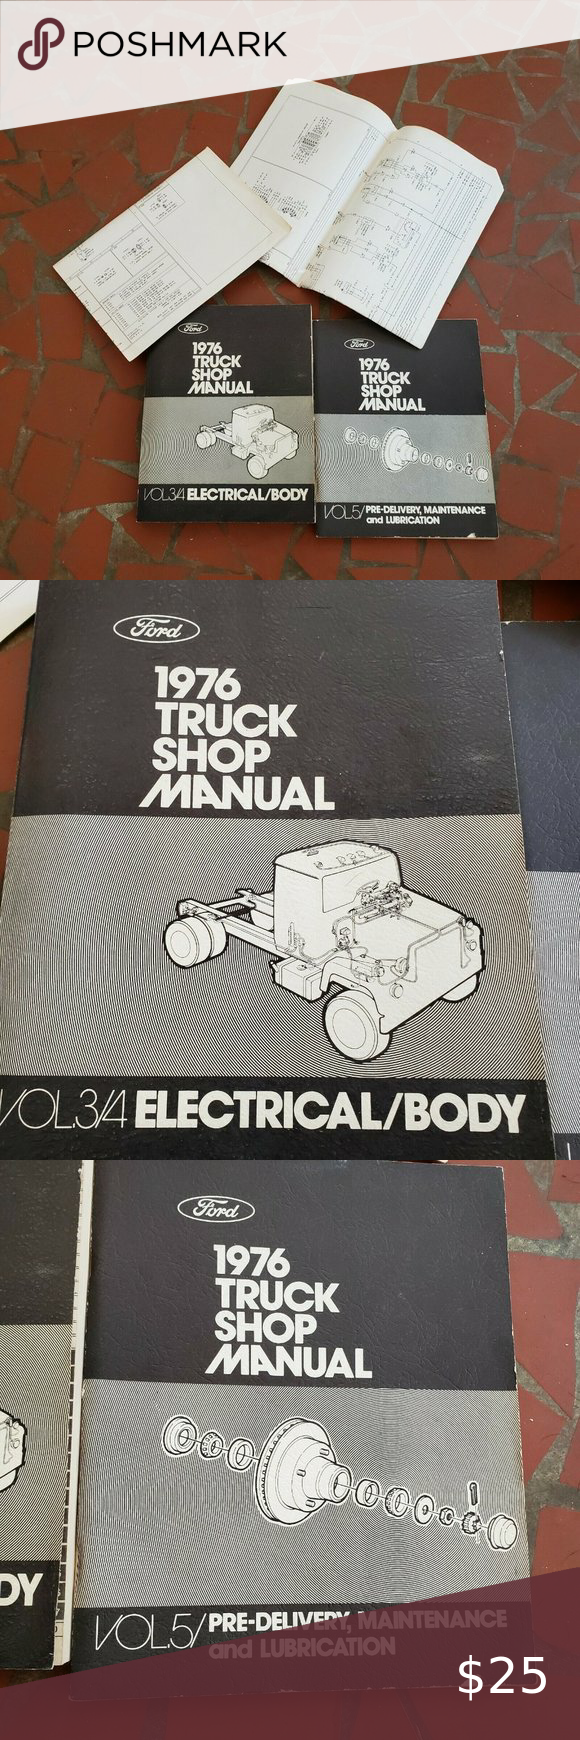 1976 Ford Truck Factory Shop Manuals In 2020 Ford Truck Ford Trucks